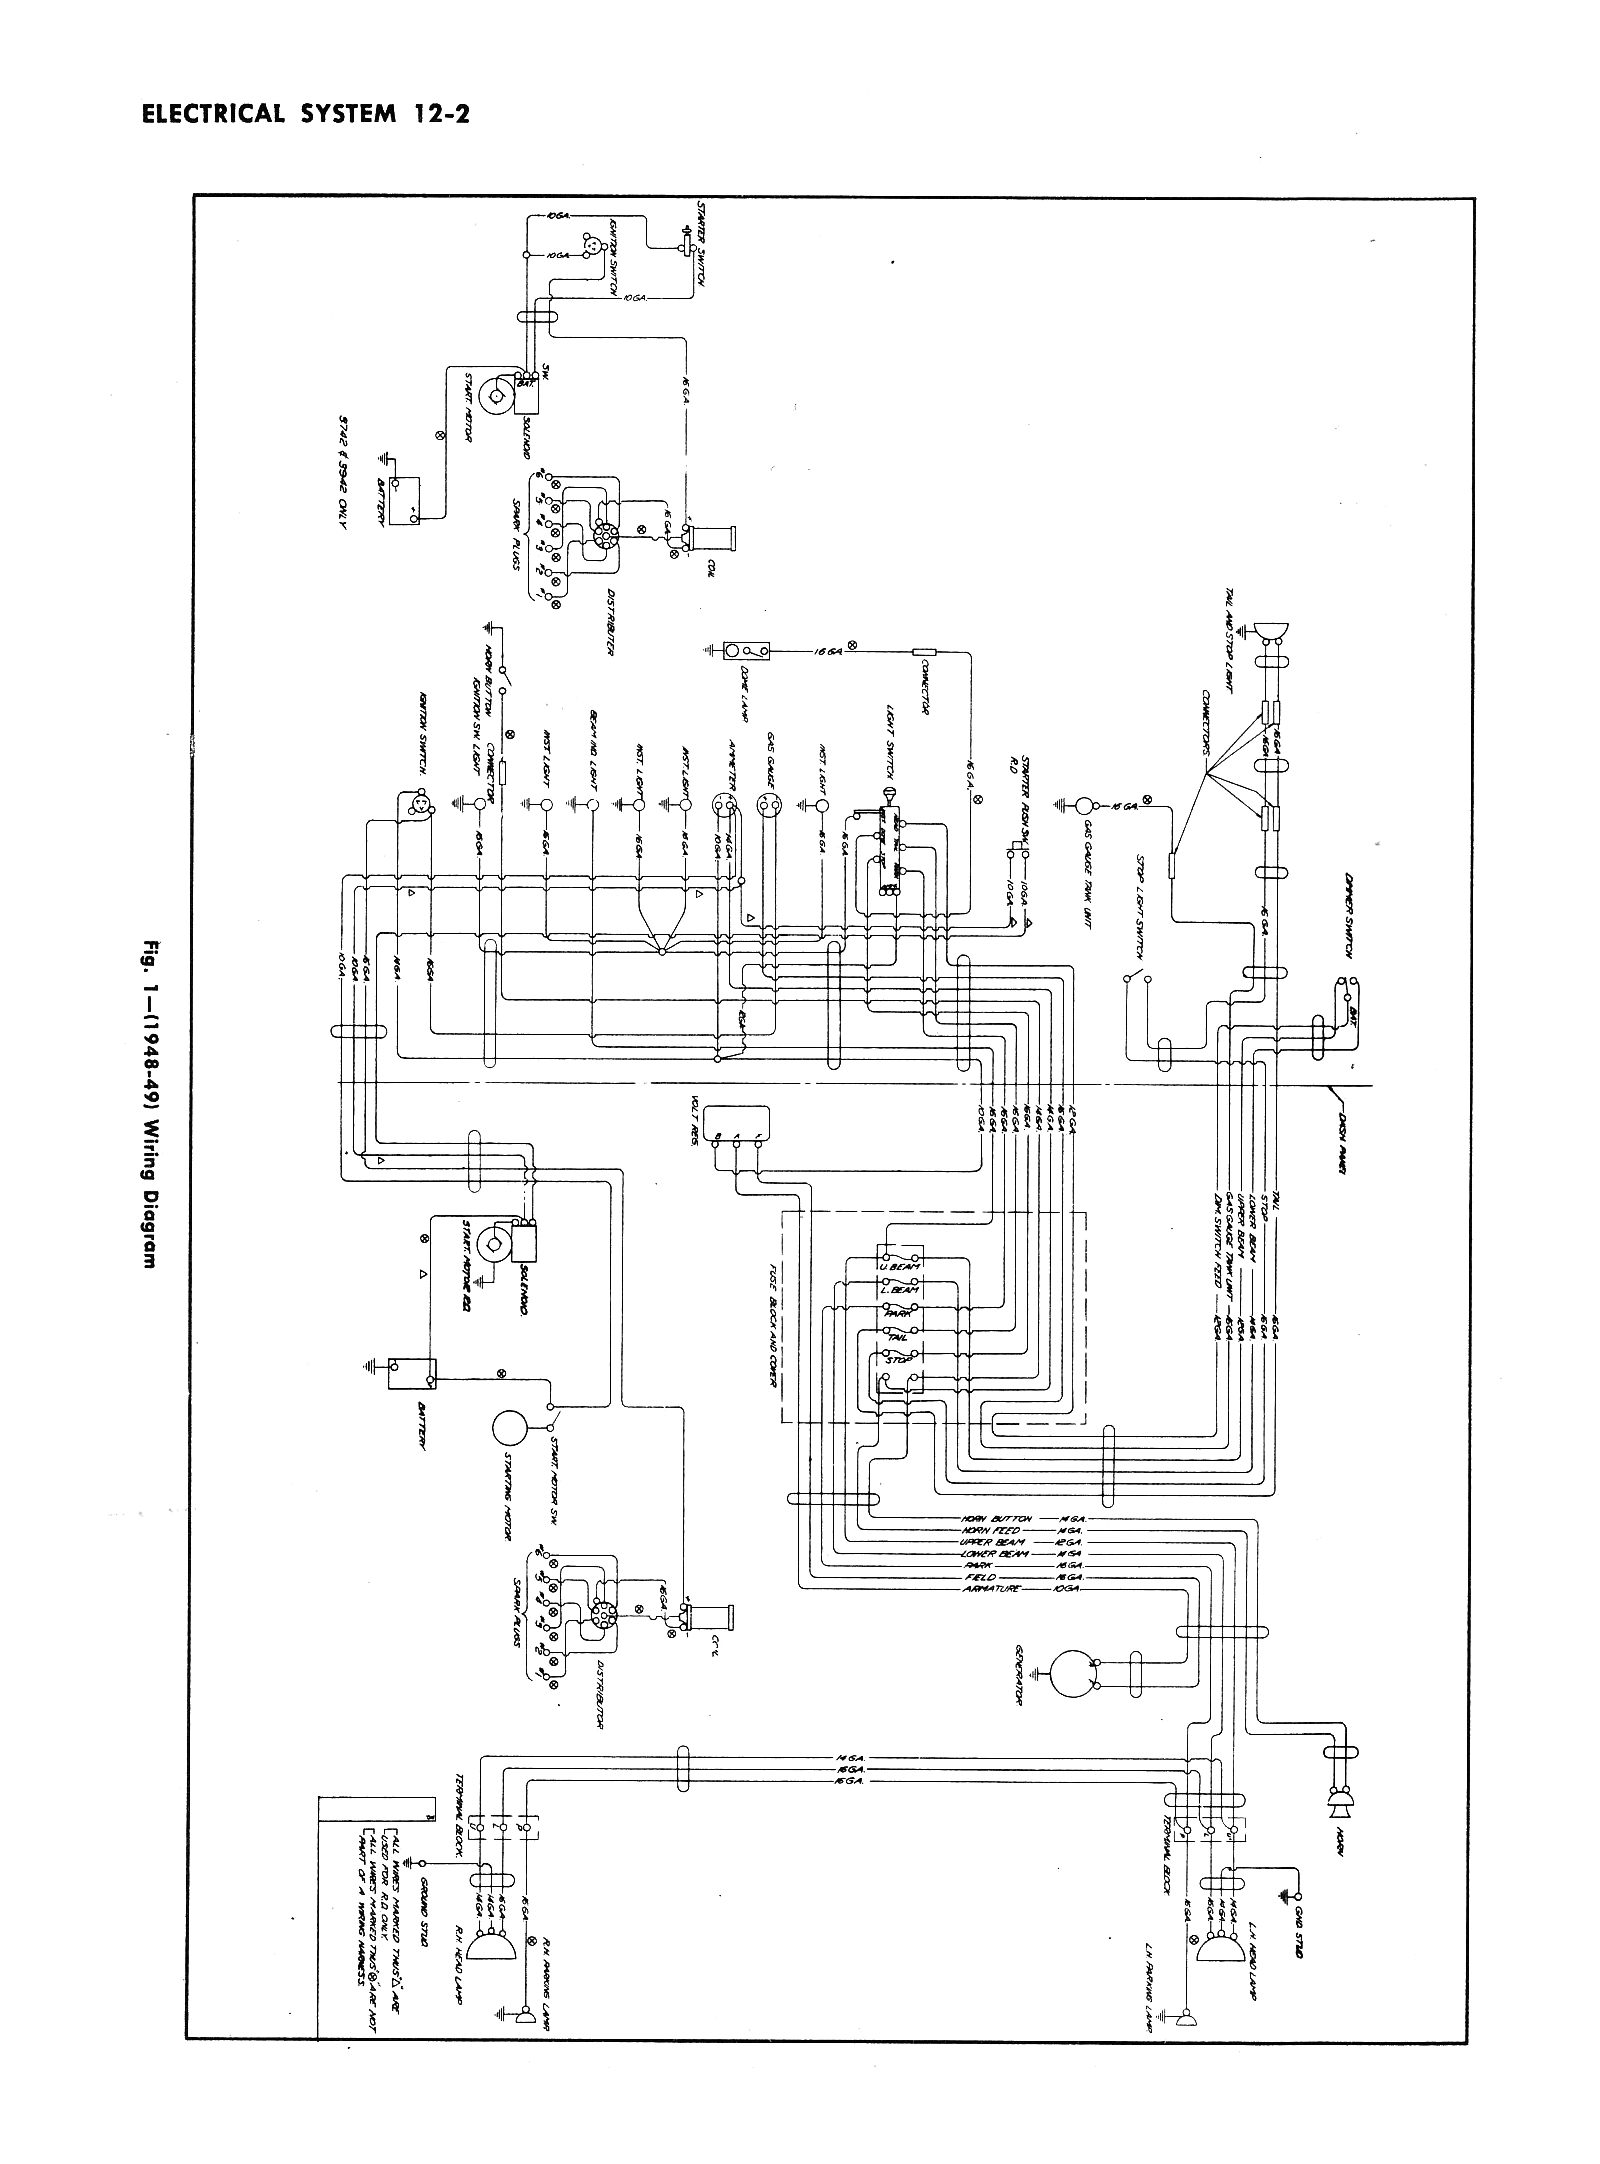 1984 chevy truck electrical wiring diagram 1984 chevy wiring diagrams on 1984 chevy truck electrical wiring diagram